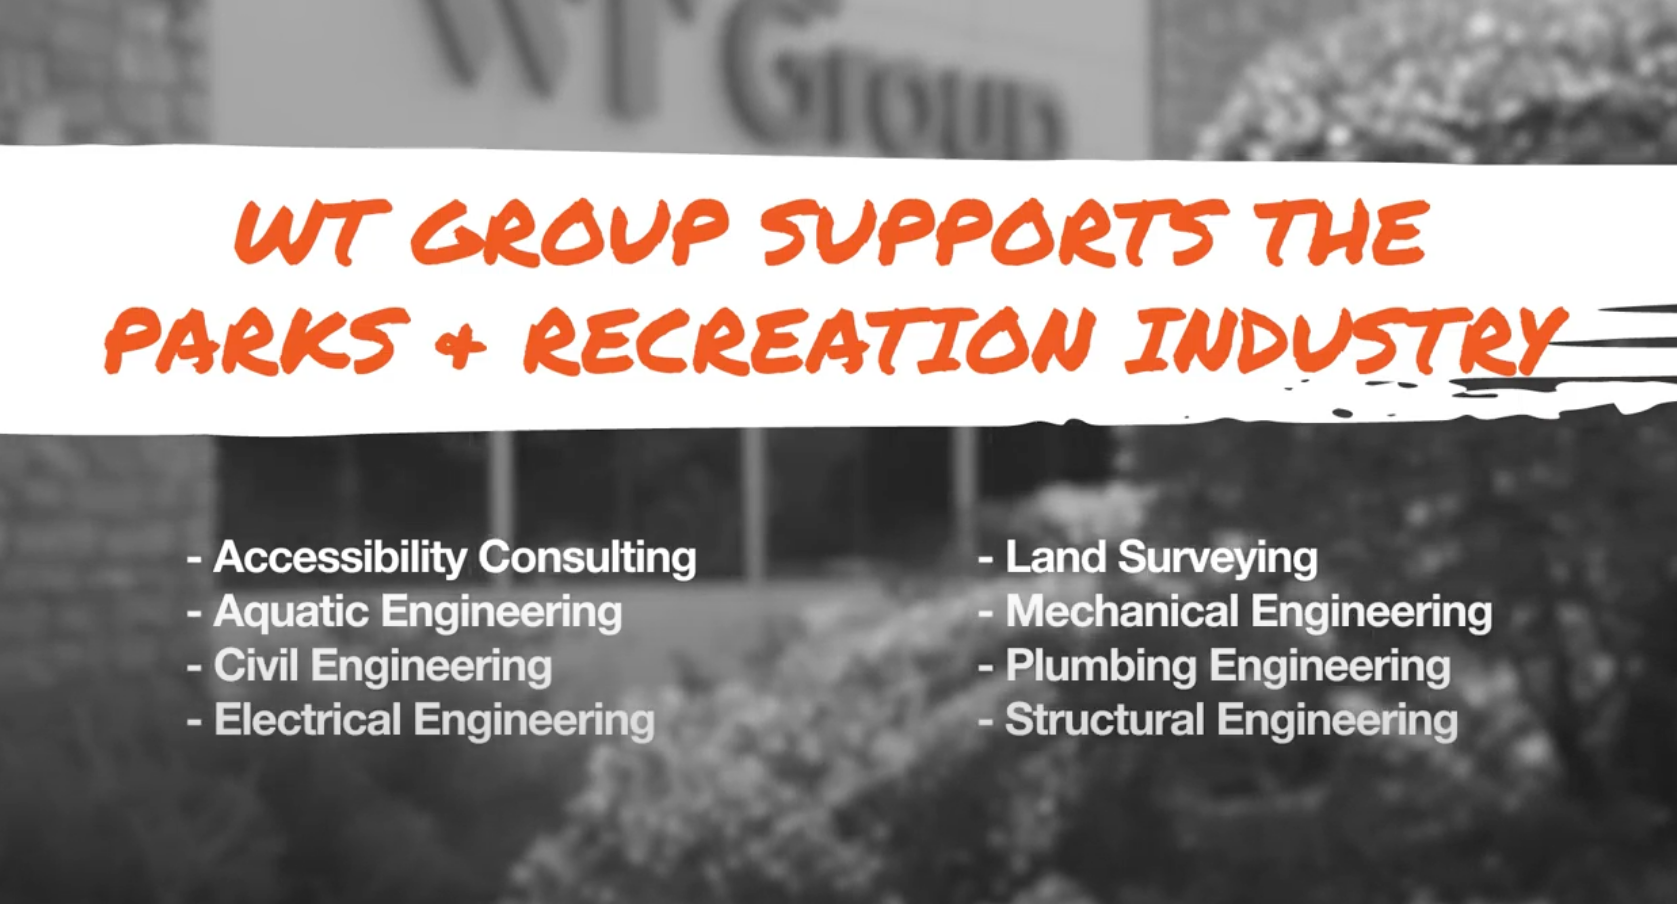 WT Group is a Proud Supporter of The National Association of Park Foundations